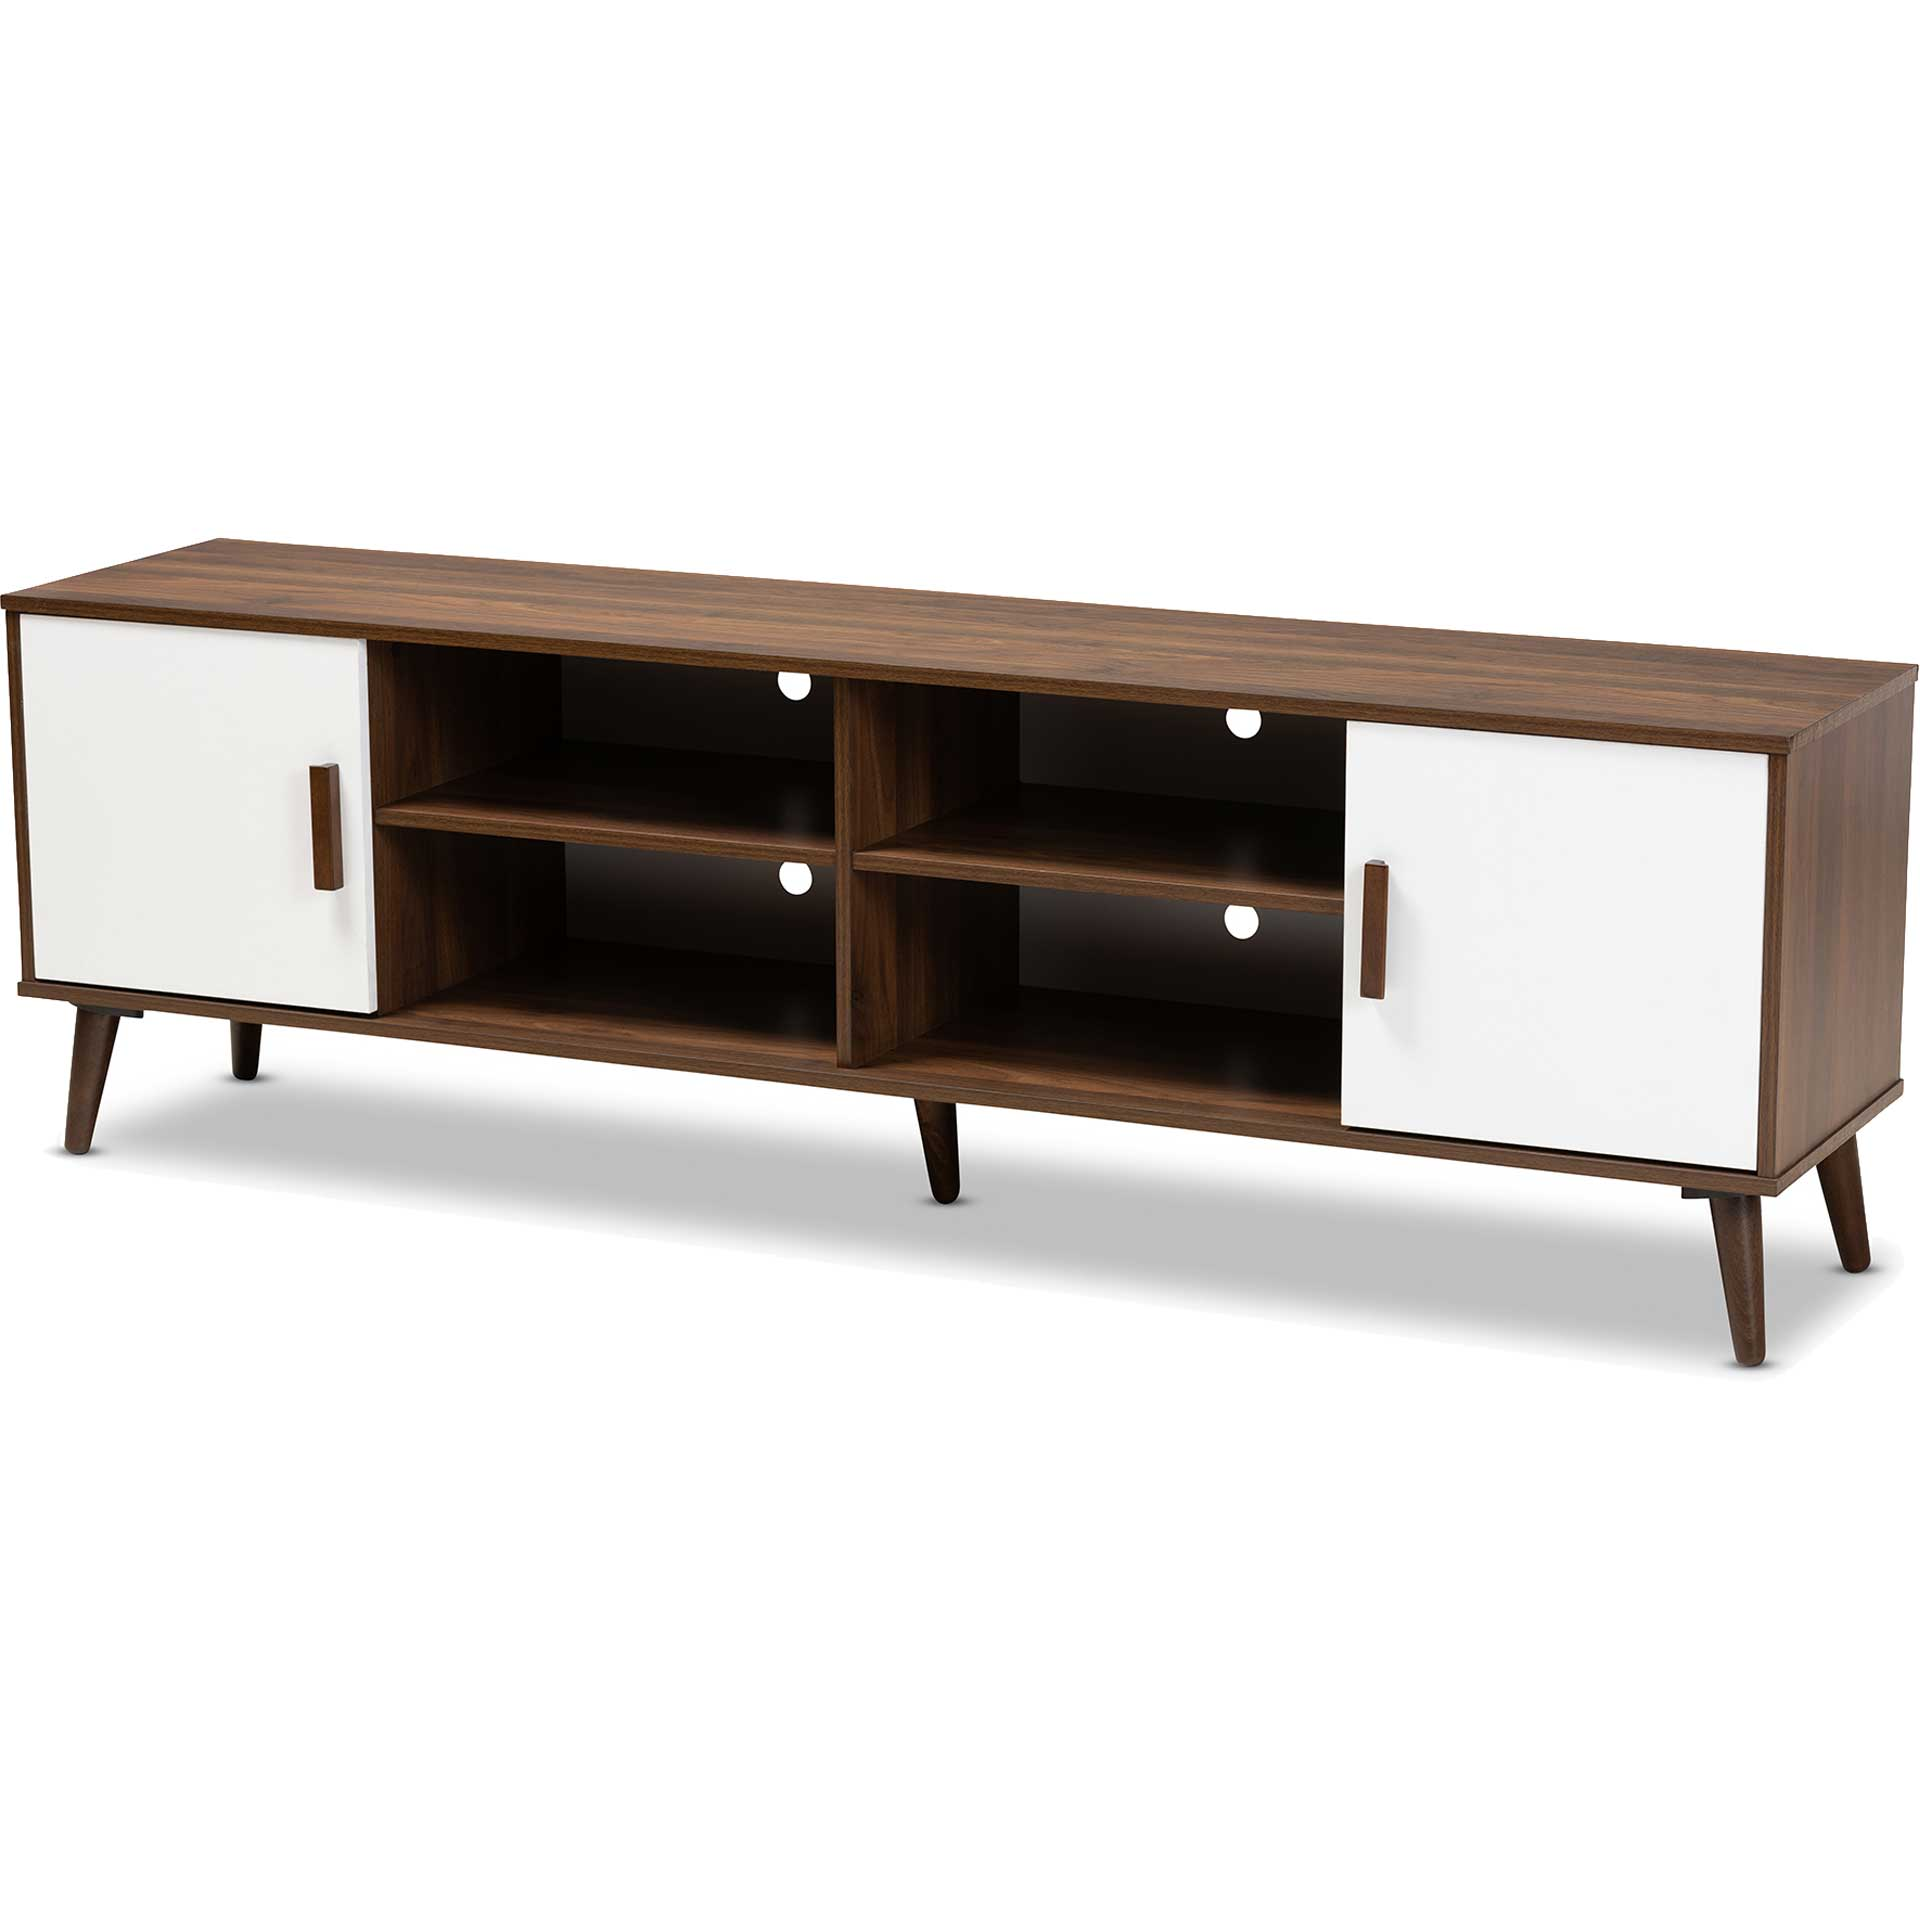 Quan 2-Door TV Stand Walnut/White